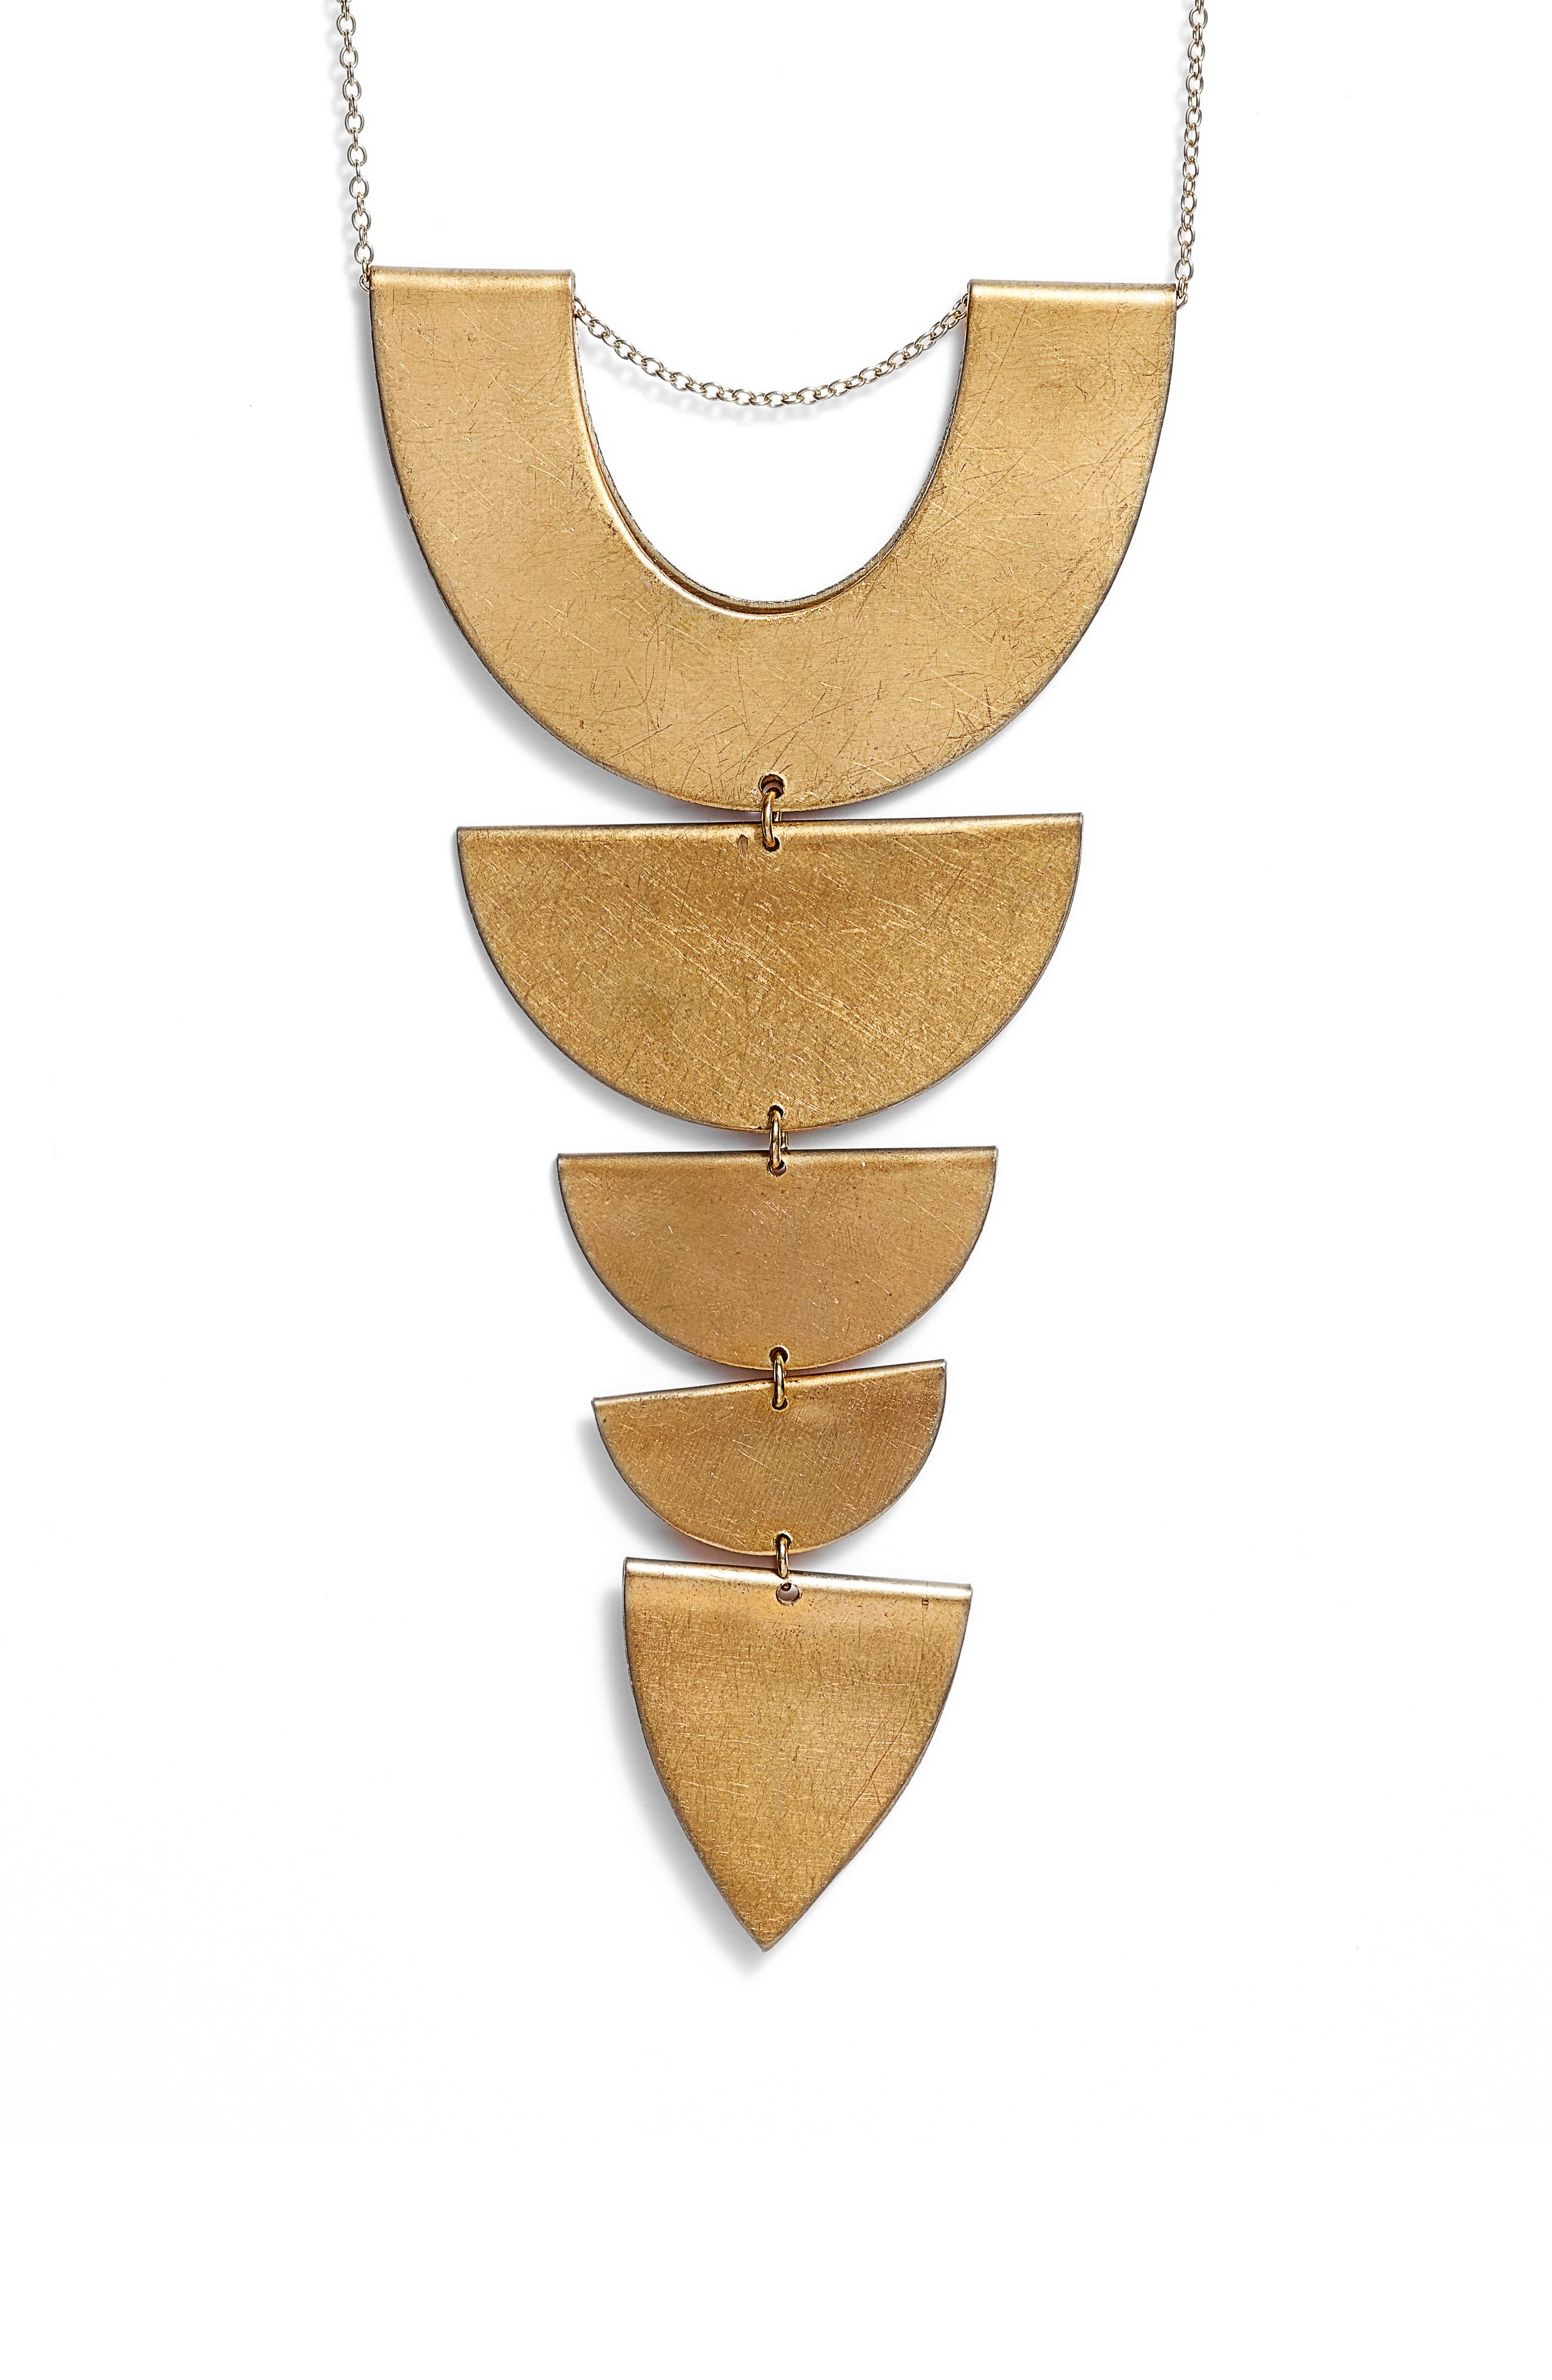 Tiered Pendant Necklace,                             Alternate thumbnail 2, color,                             710